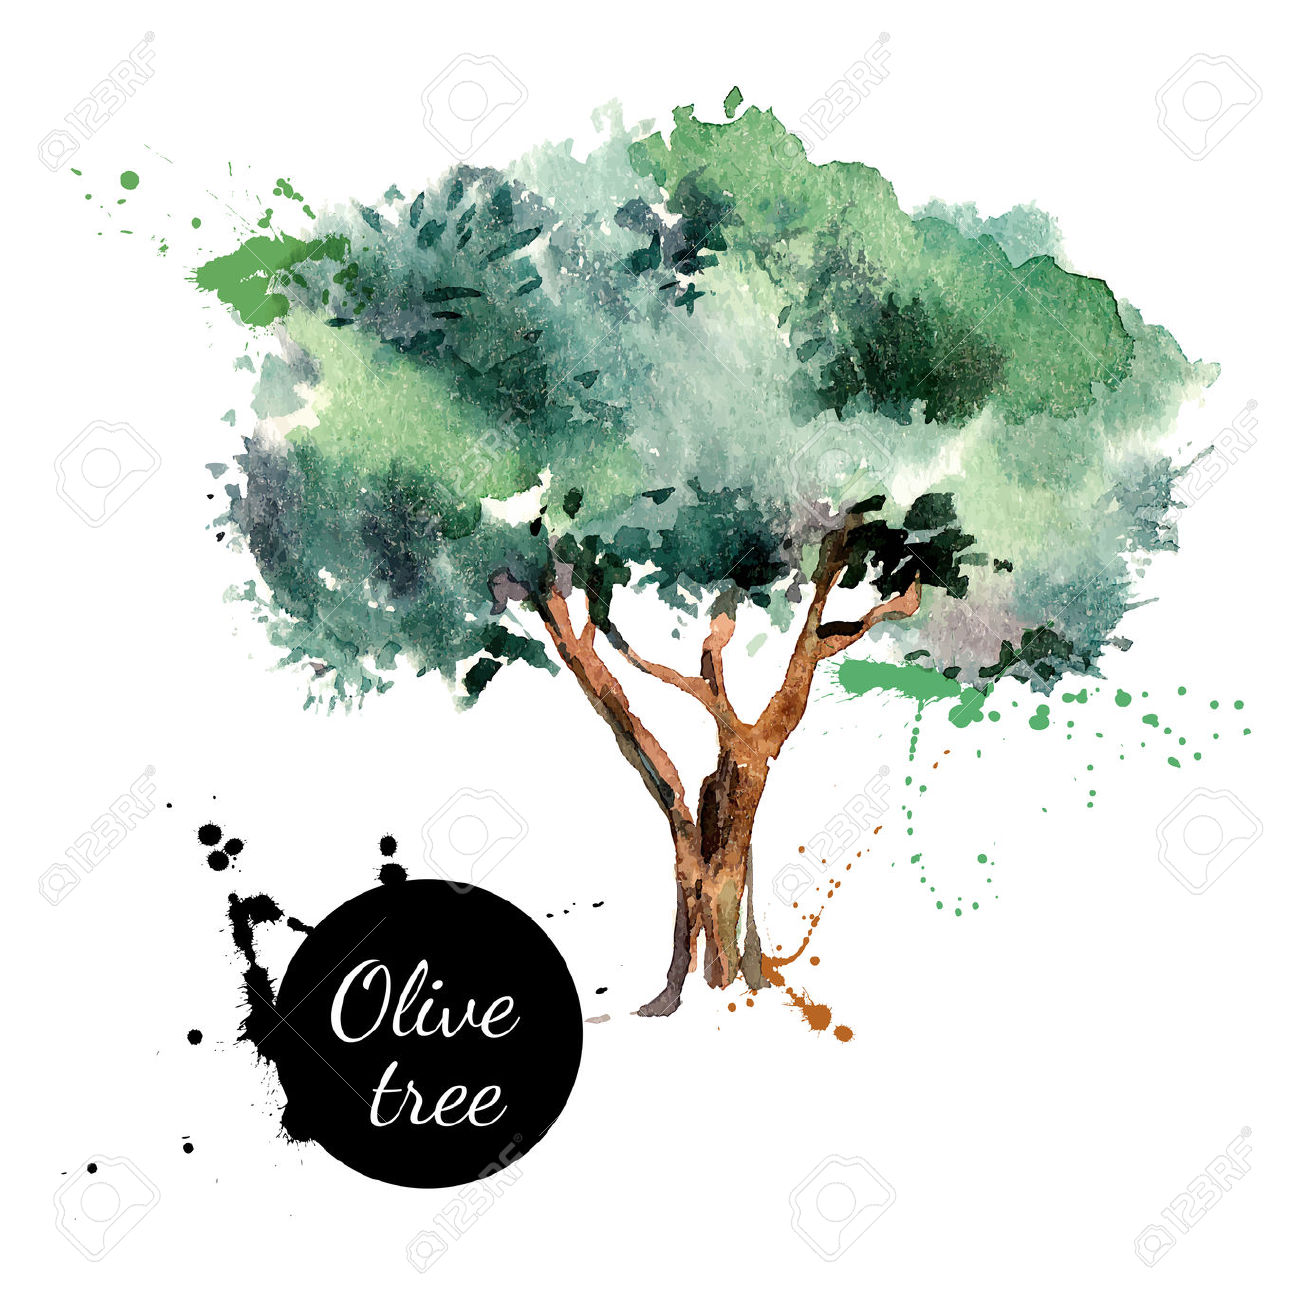 Olive Tree Vector Illustration. Hand Drawn Watercolor Painting.